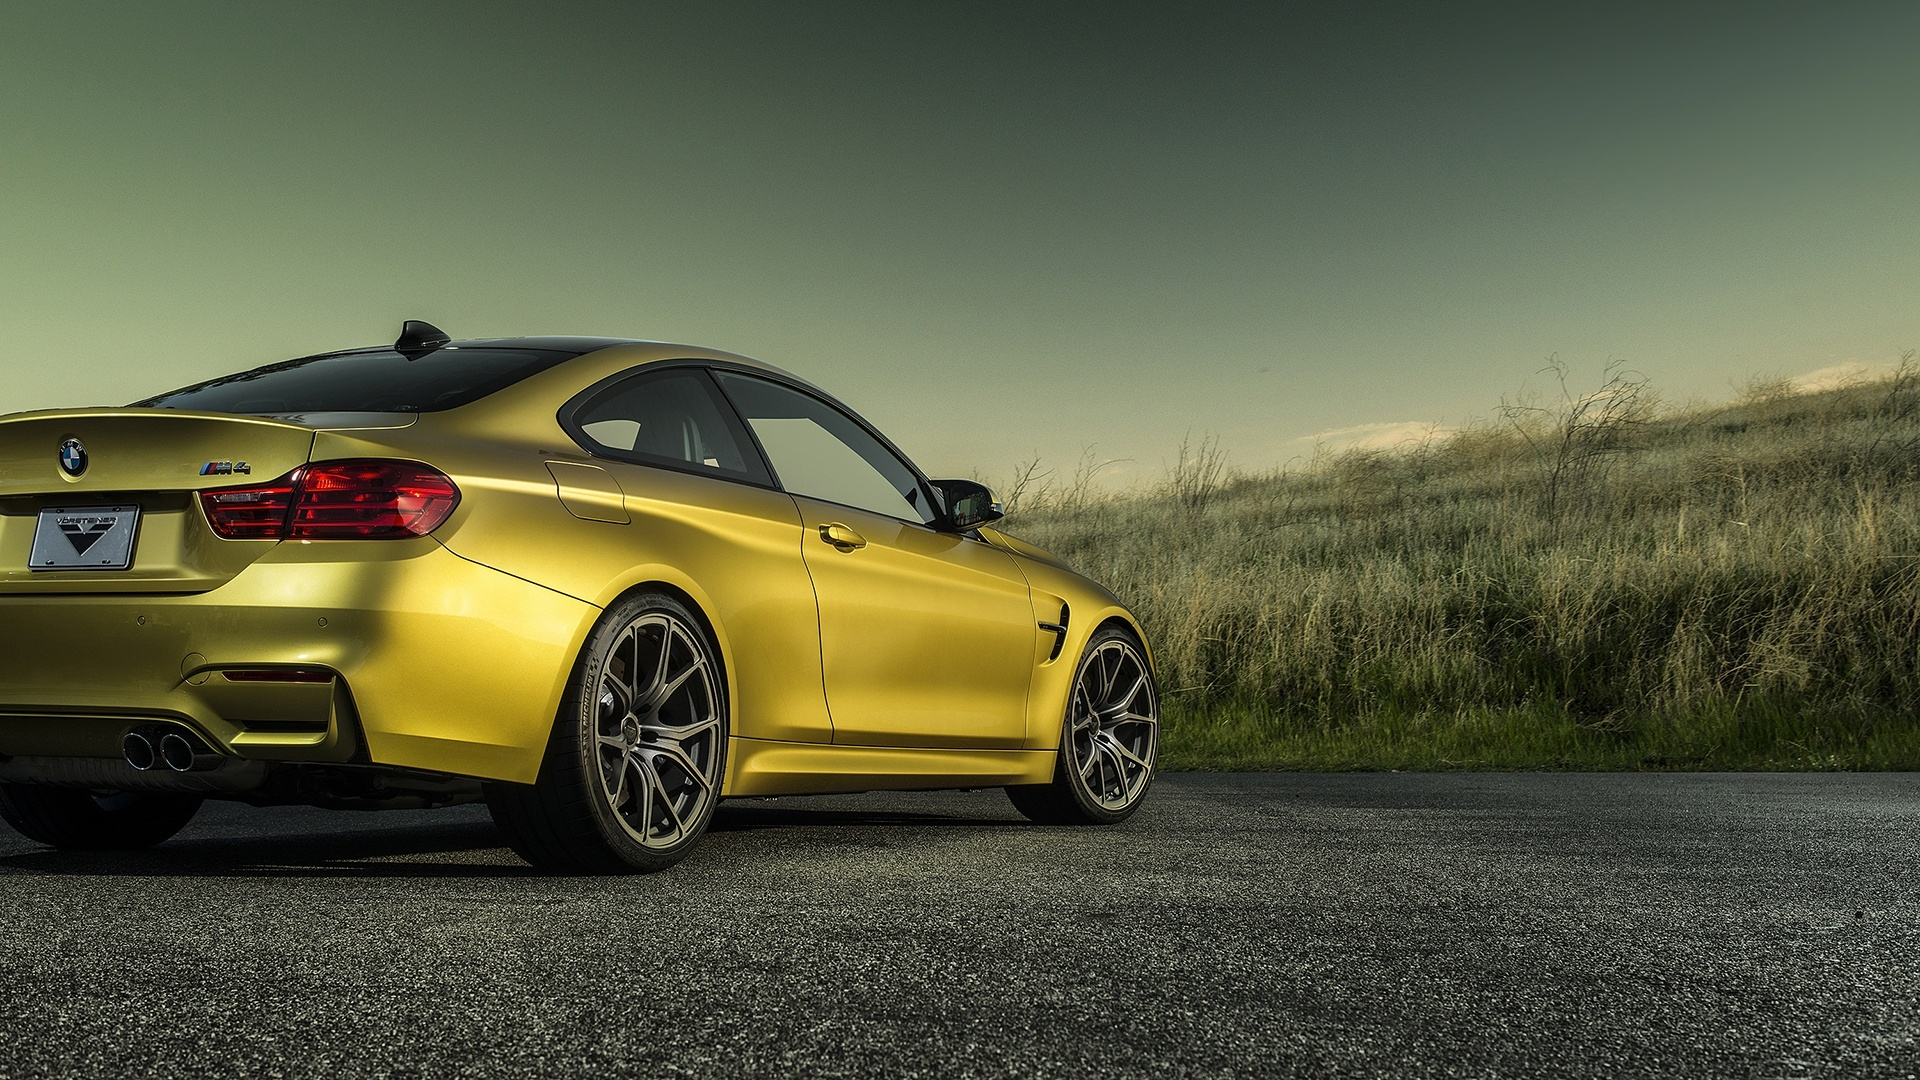 Bmw M4 F82 2014 Wallpapers 1920x1080 955232